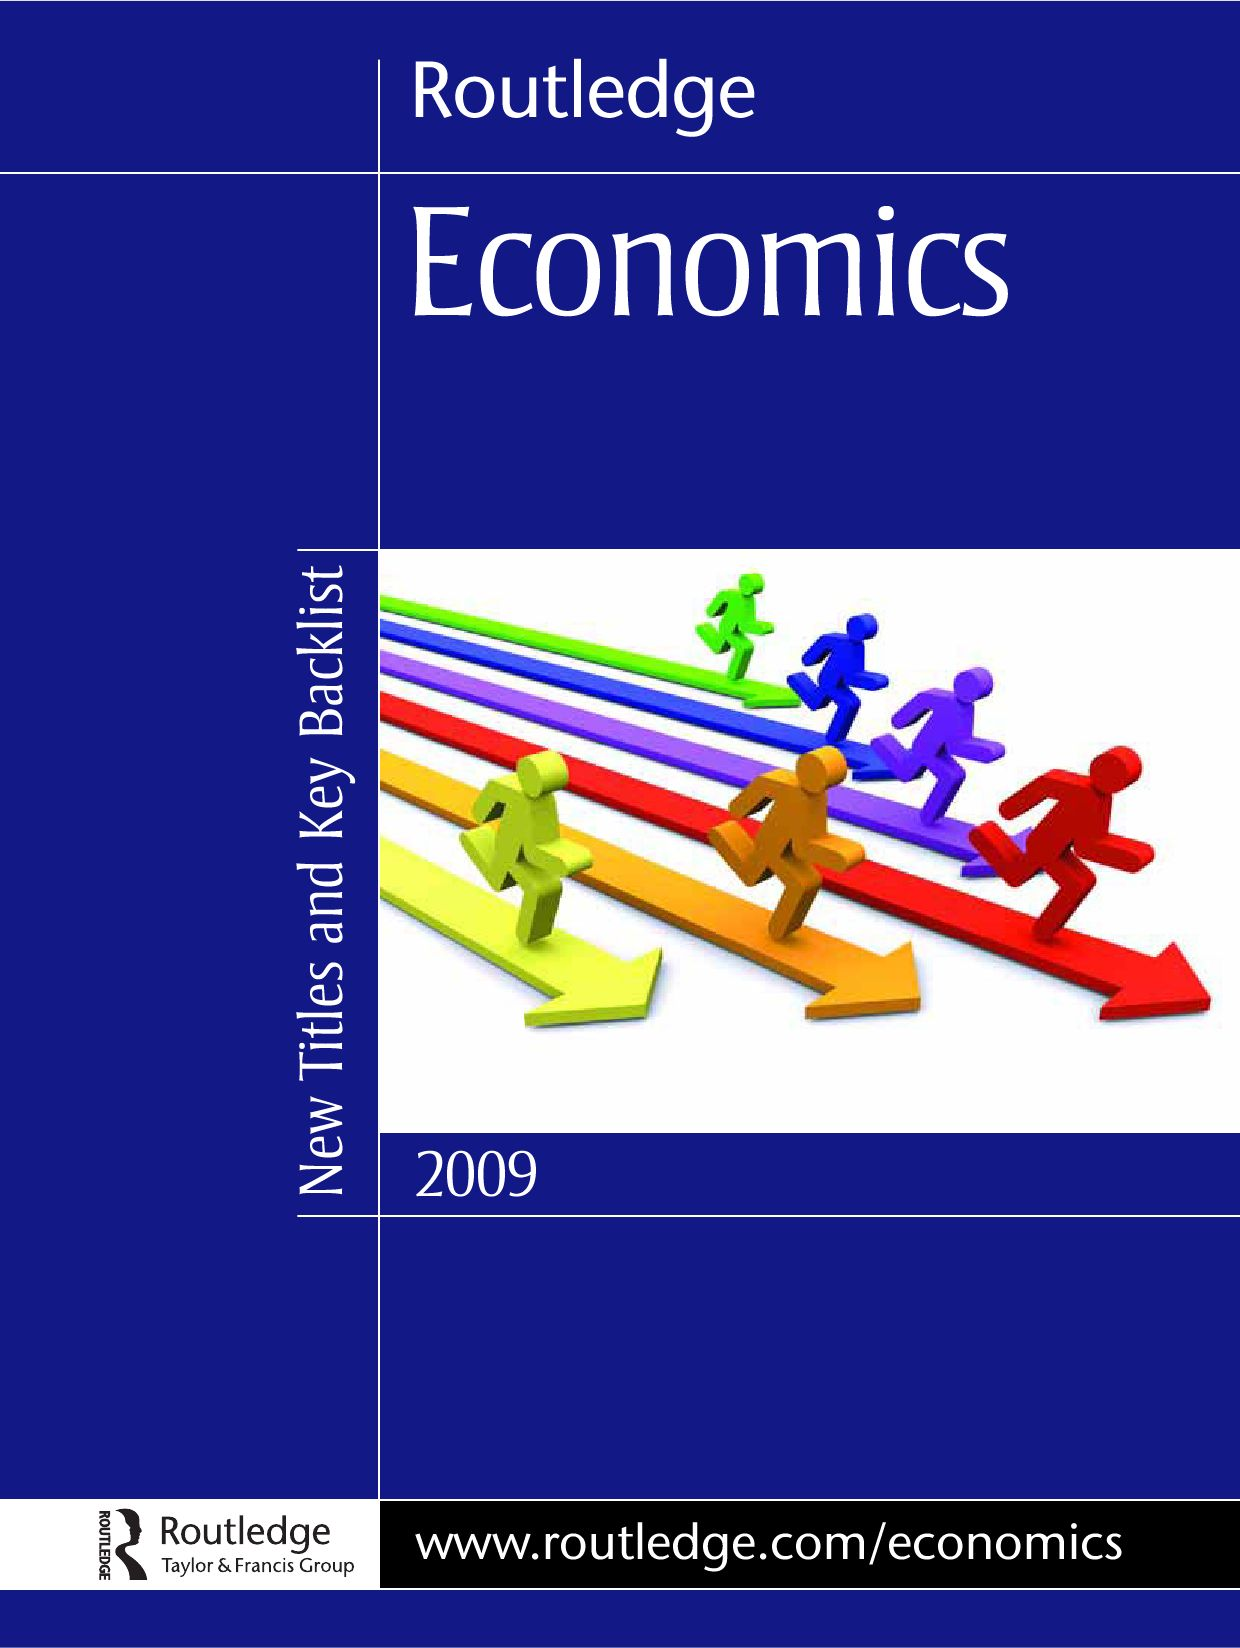 Routledge Economics 2009 (UK): New Titles and key Backlist by Routledge  Taylor & Francis Group - issuu